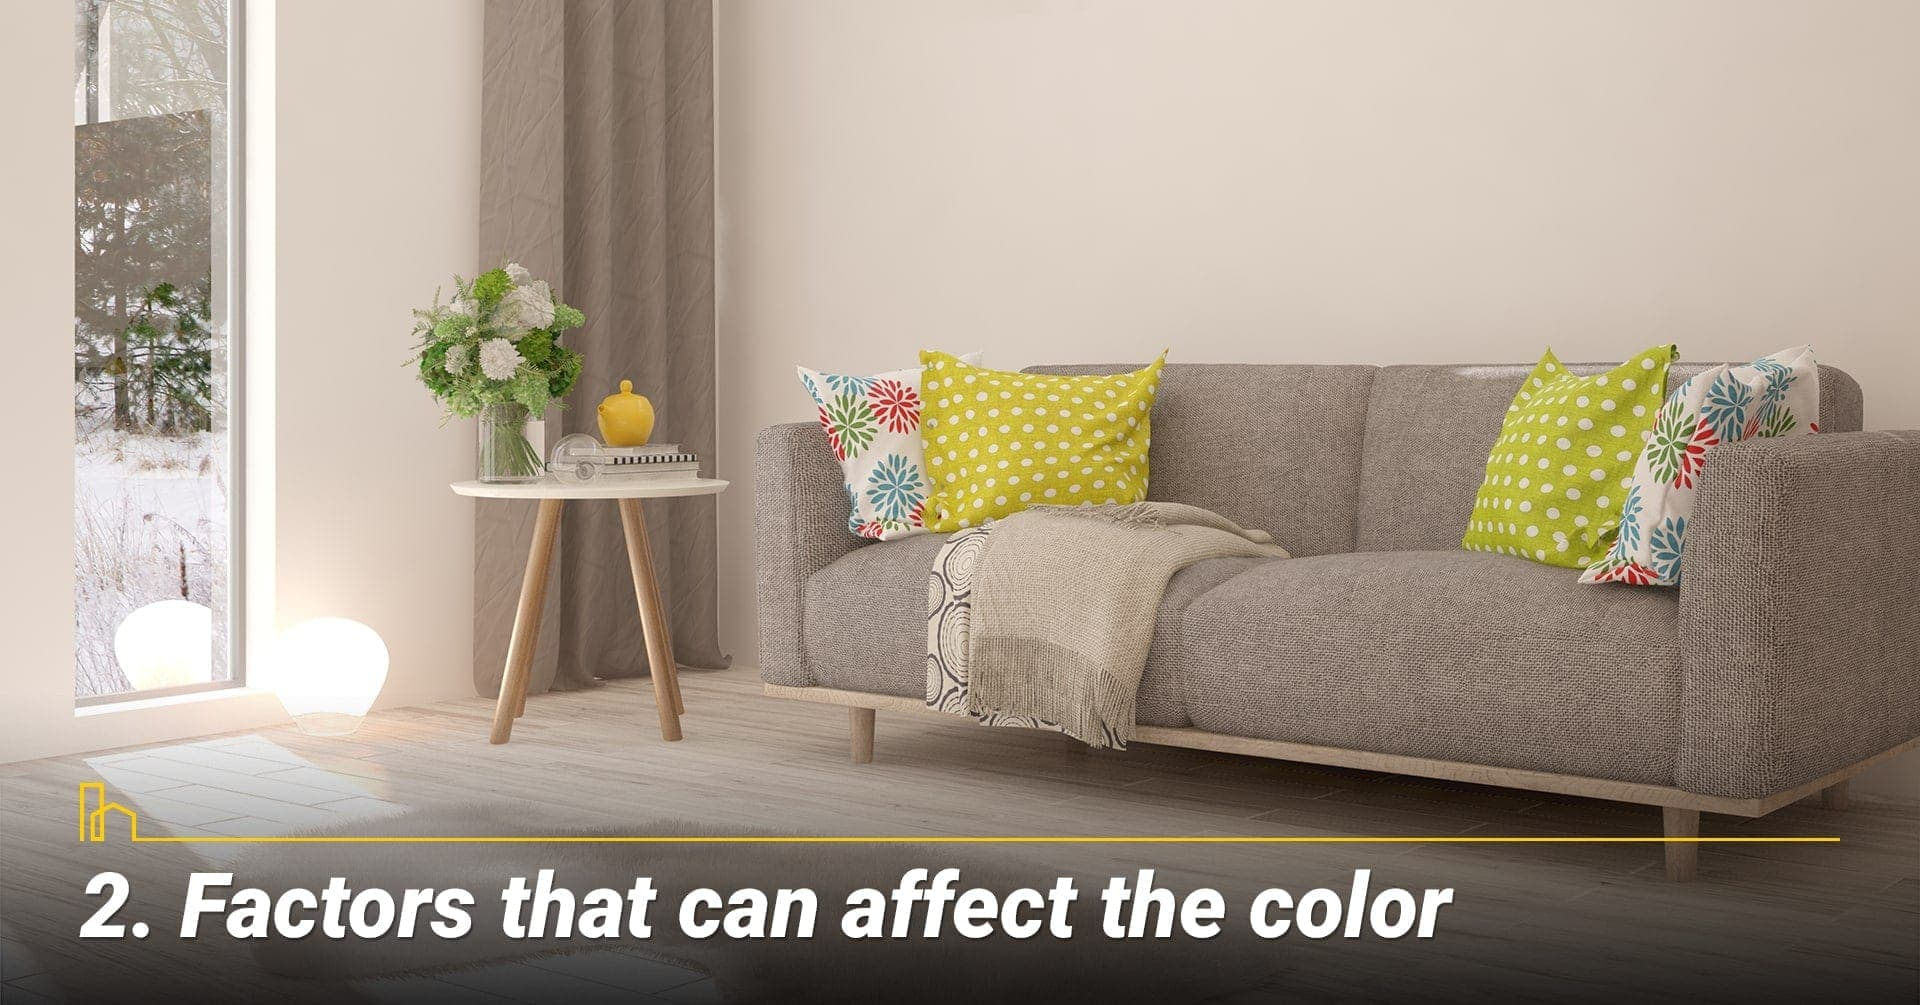 Factors that can affect the color